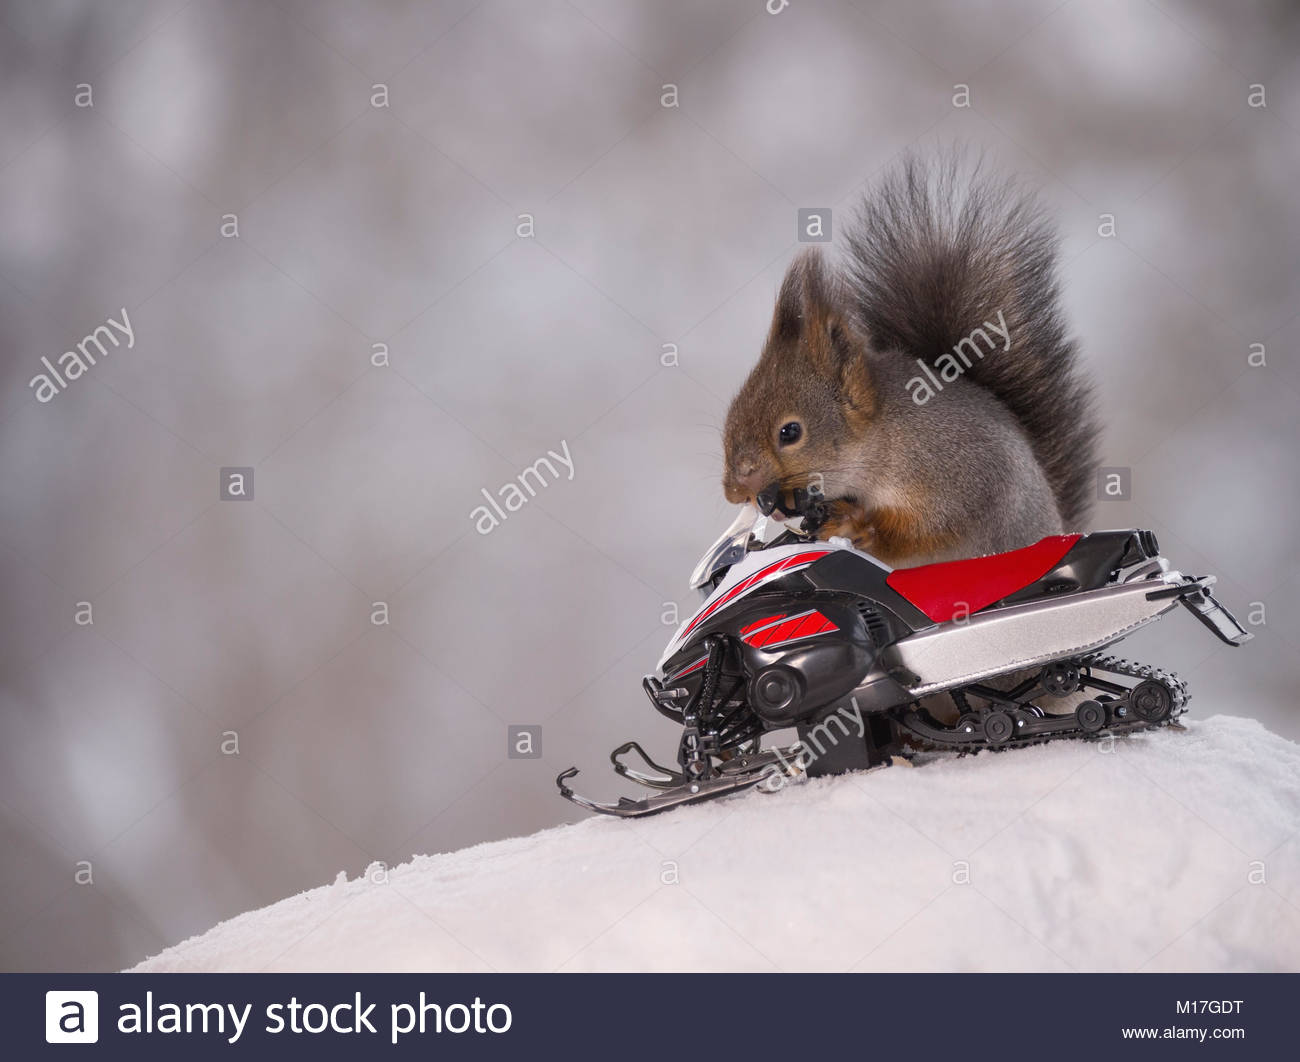 Red squirrel with a snowmobile - Stock Image